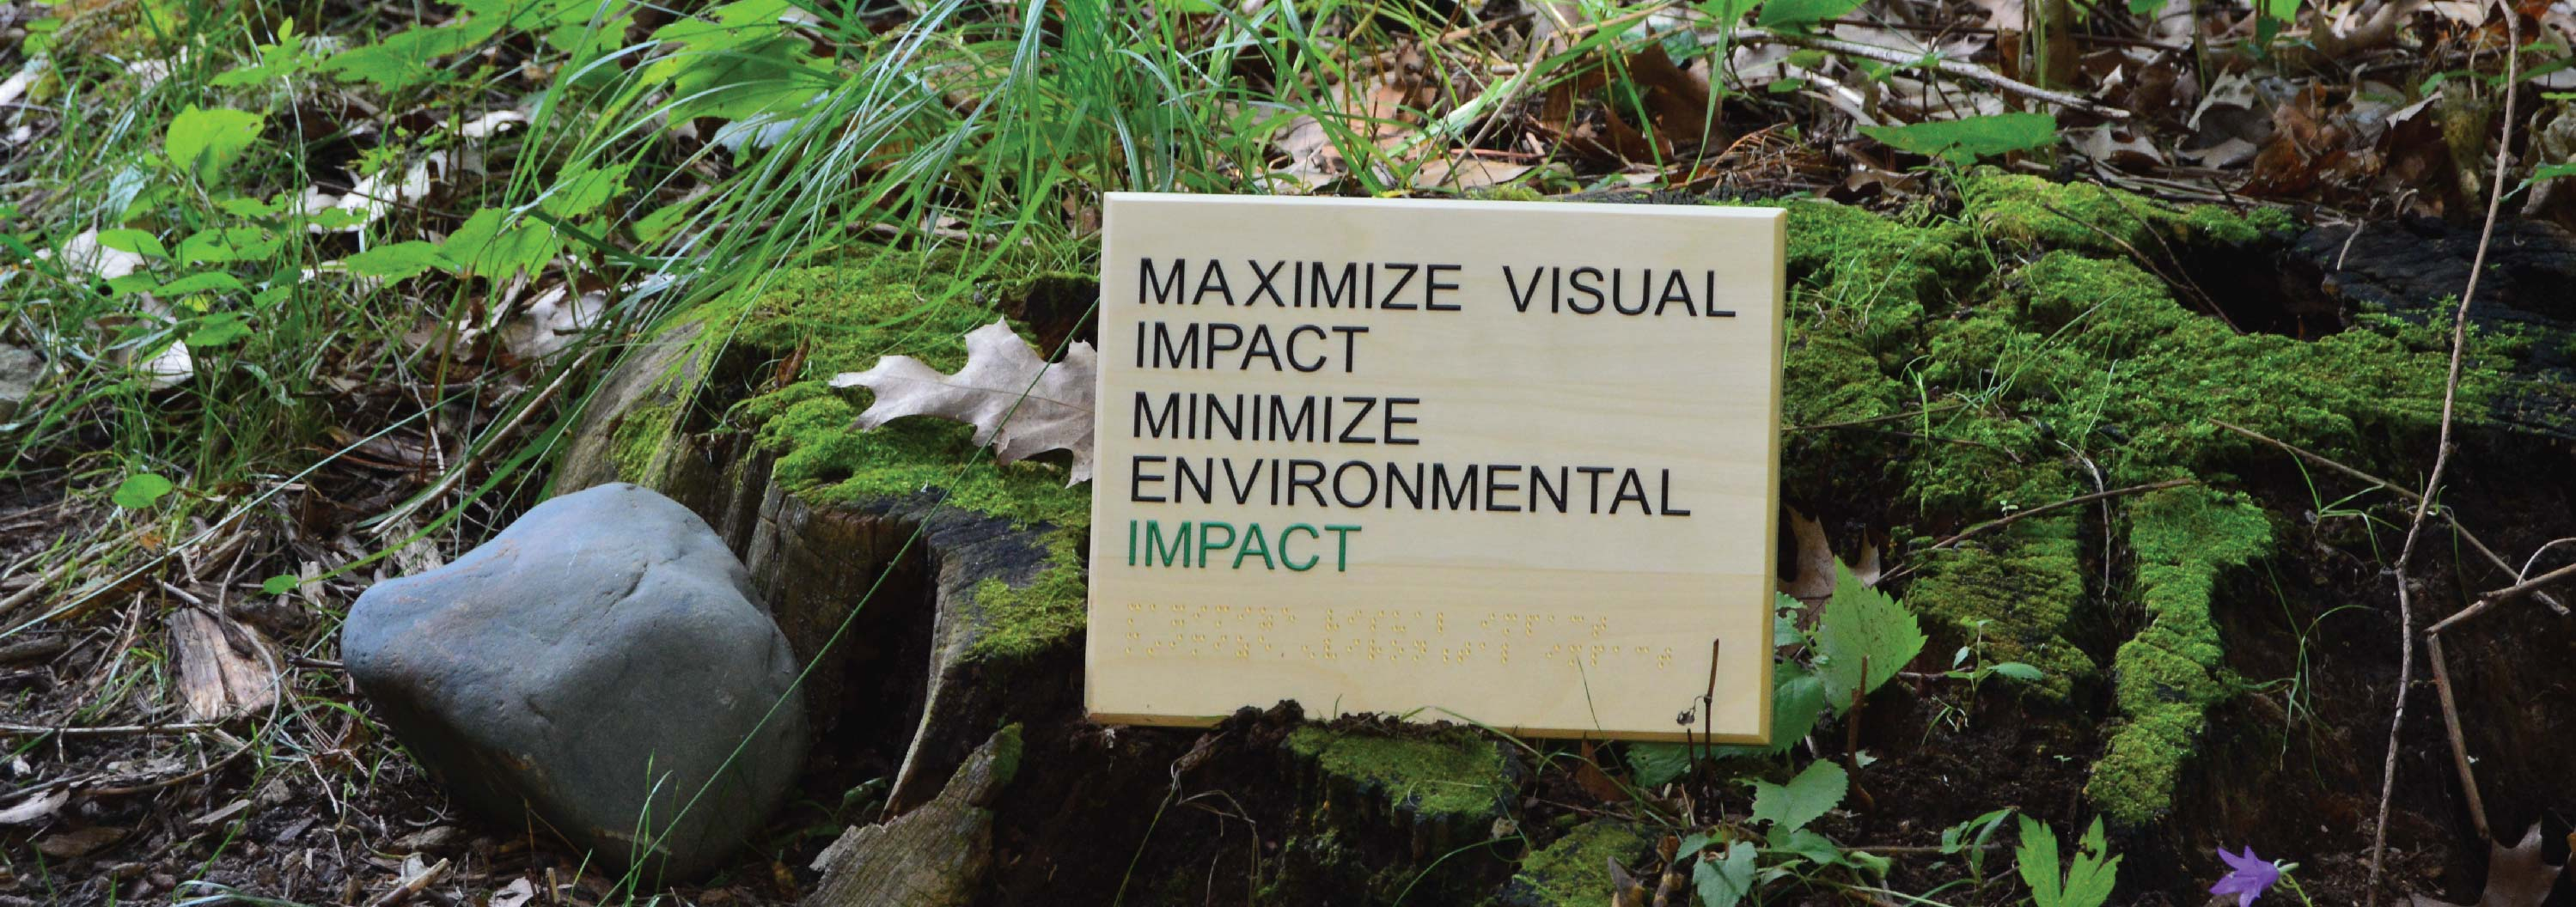 Signs that minimize environmental impact and maximize visual impact